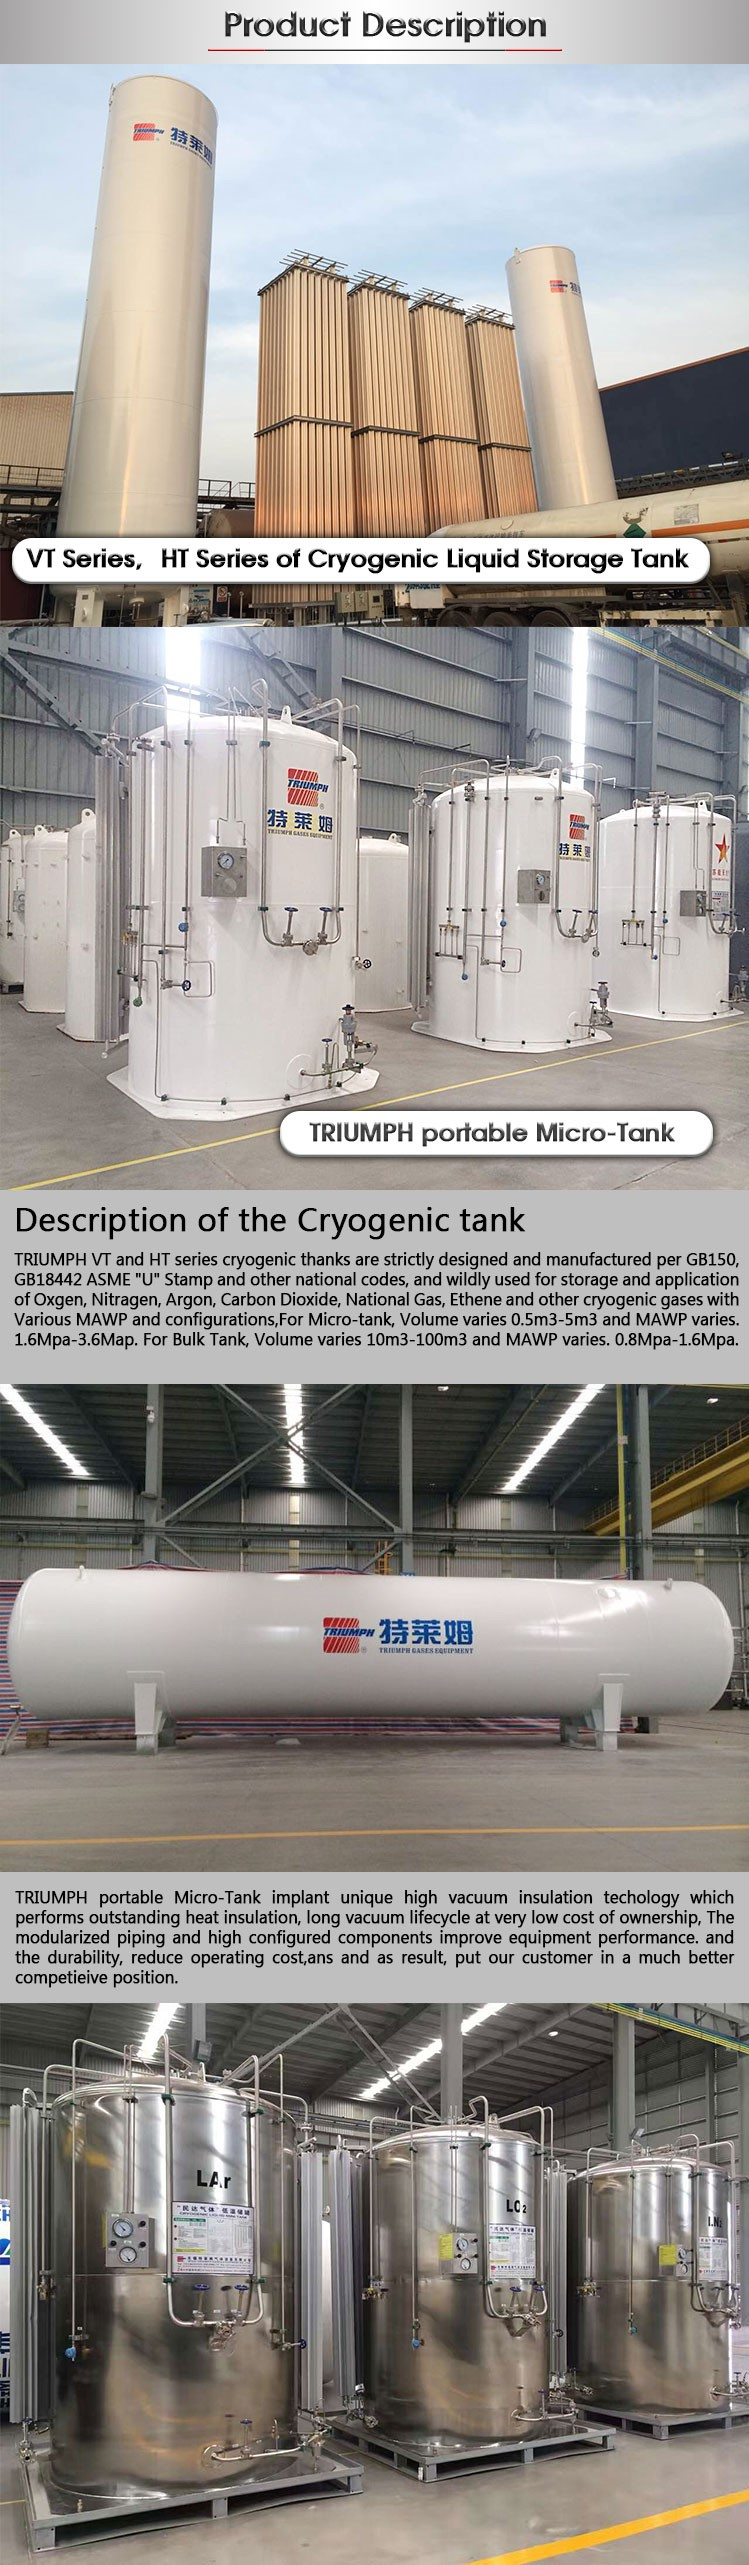 7.5m3 Cryogenic Liquid Storage Tank for LNG/Lox/Lin/Lar